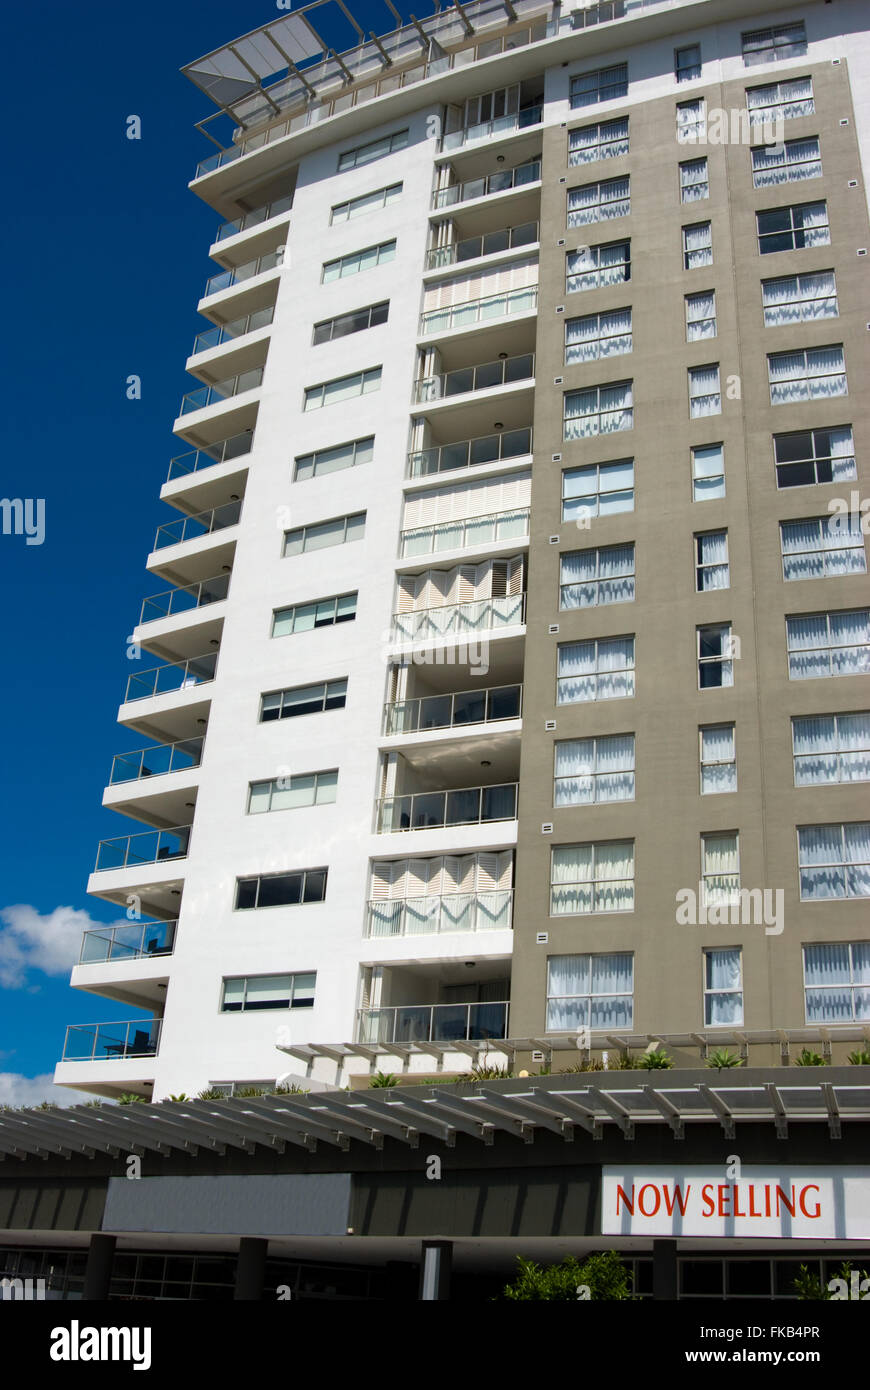 An image of units for sale in suburban Brisbane Australia. - Stock Image